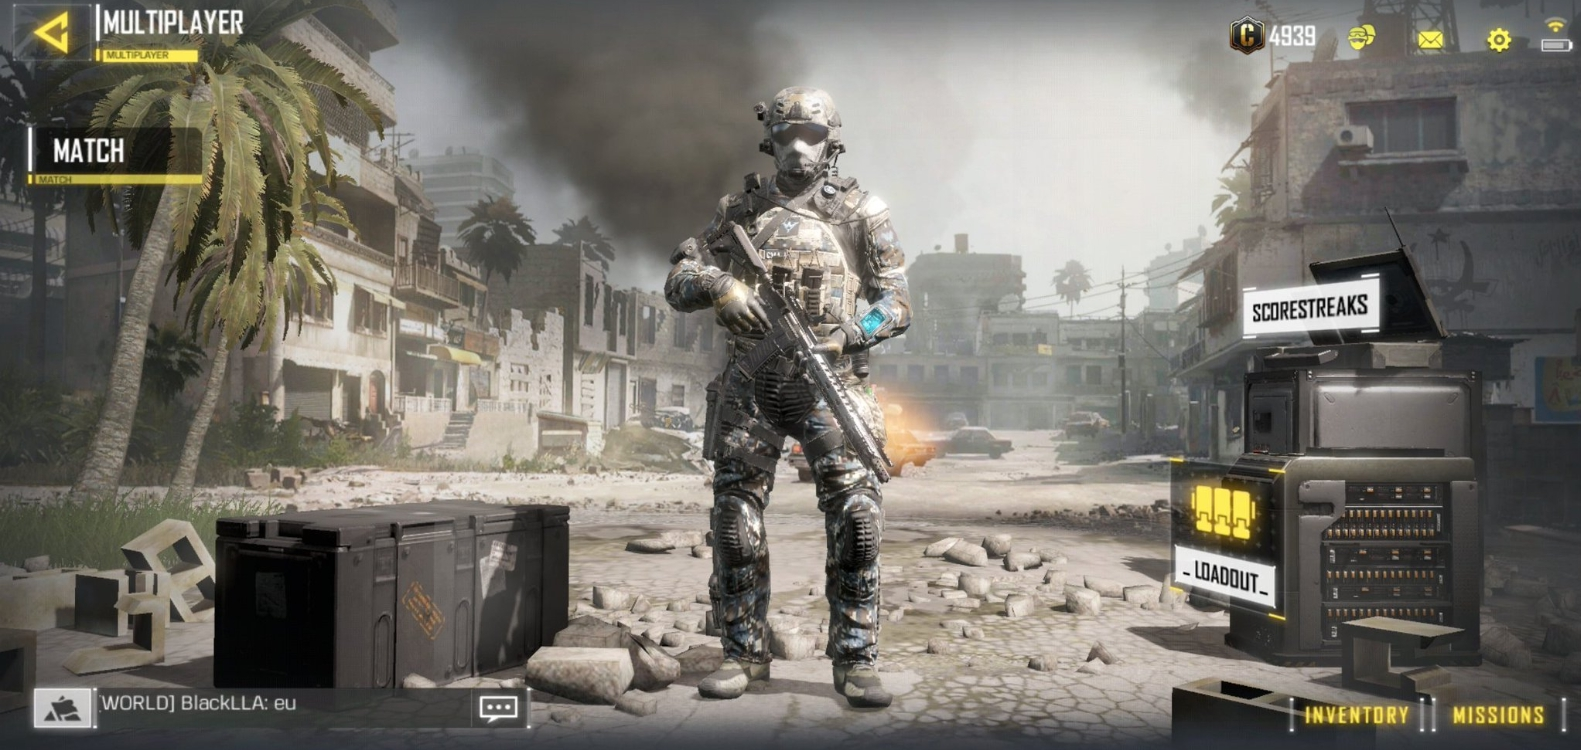 Call-Of-Duty-Mobile-Apk-Download